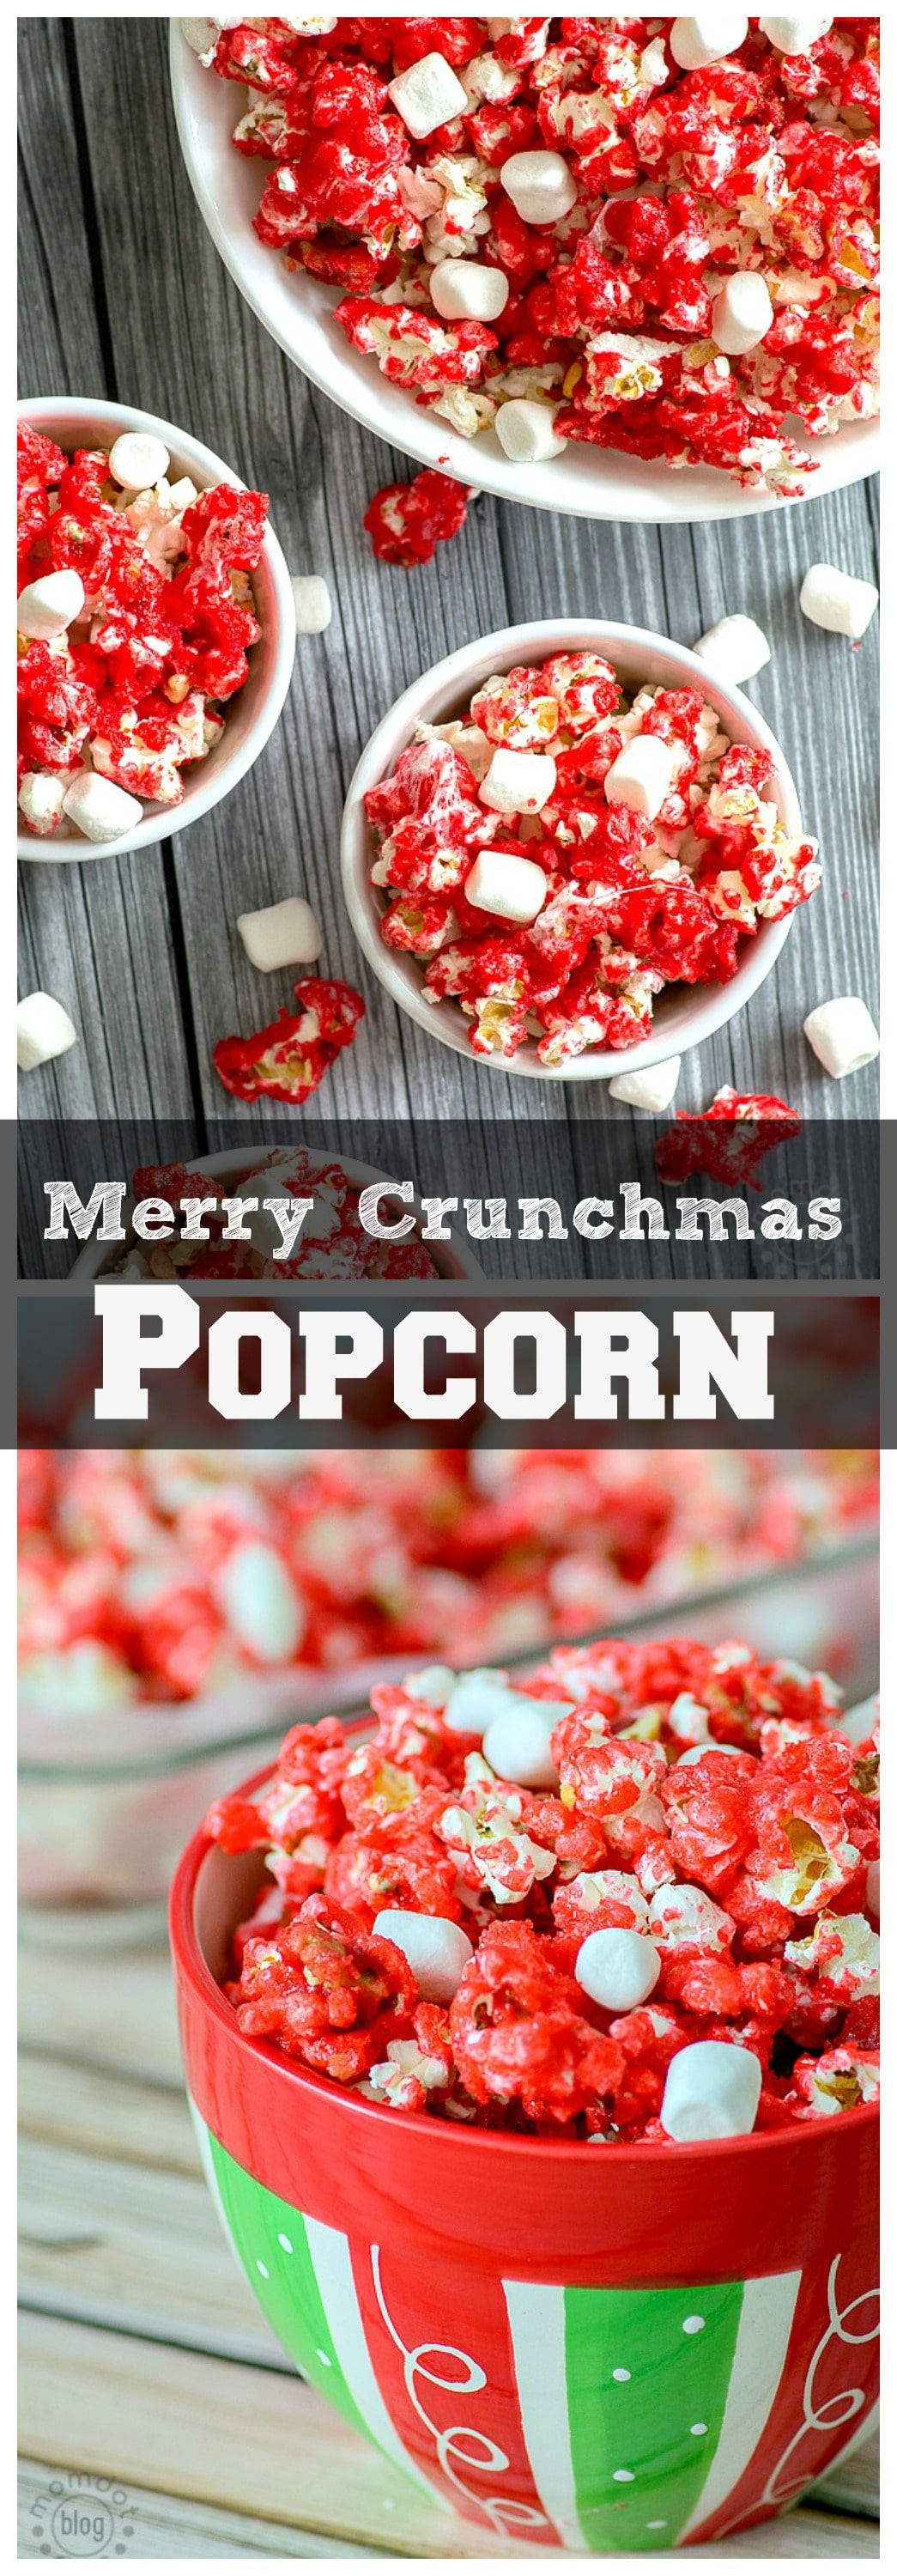 Merry Crunchmas Christmas Popcorn mix, fun recipe and perfect for a Christmas Eve Movie Treat- Get the recipe here